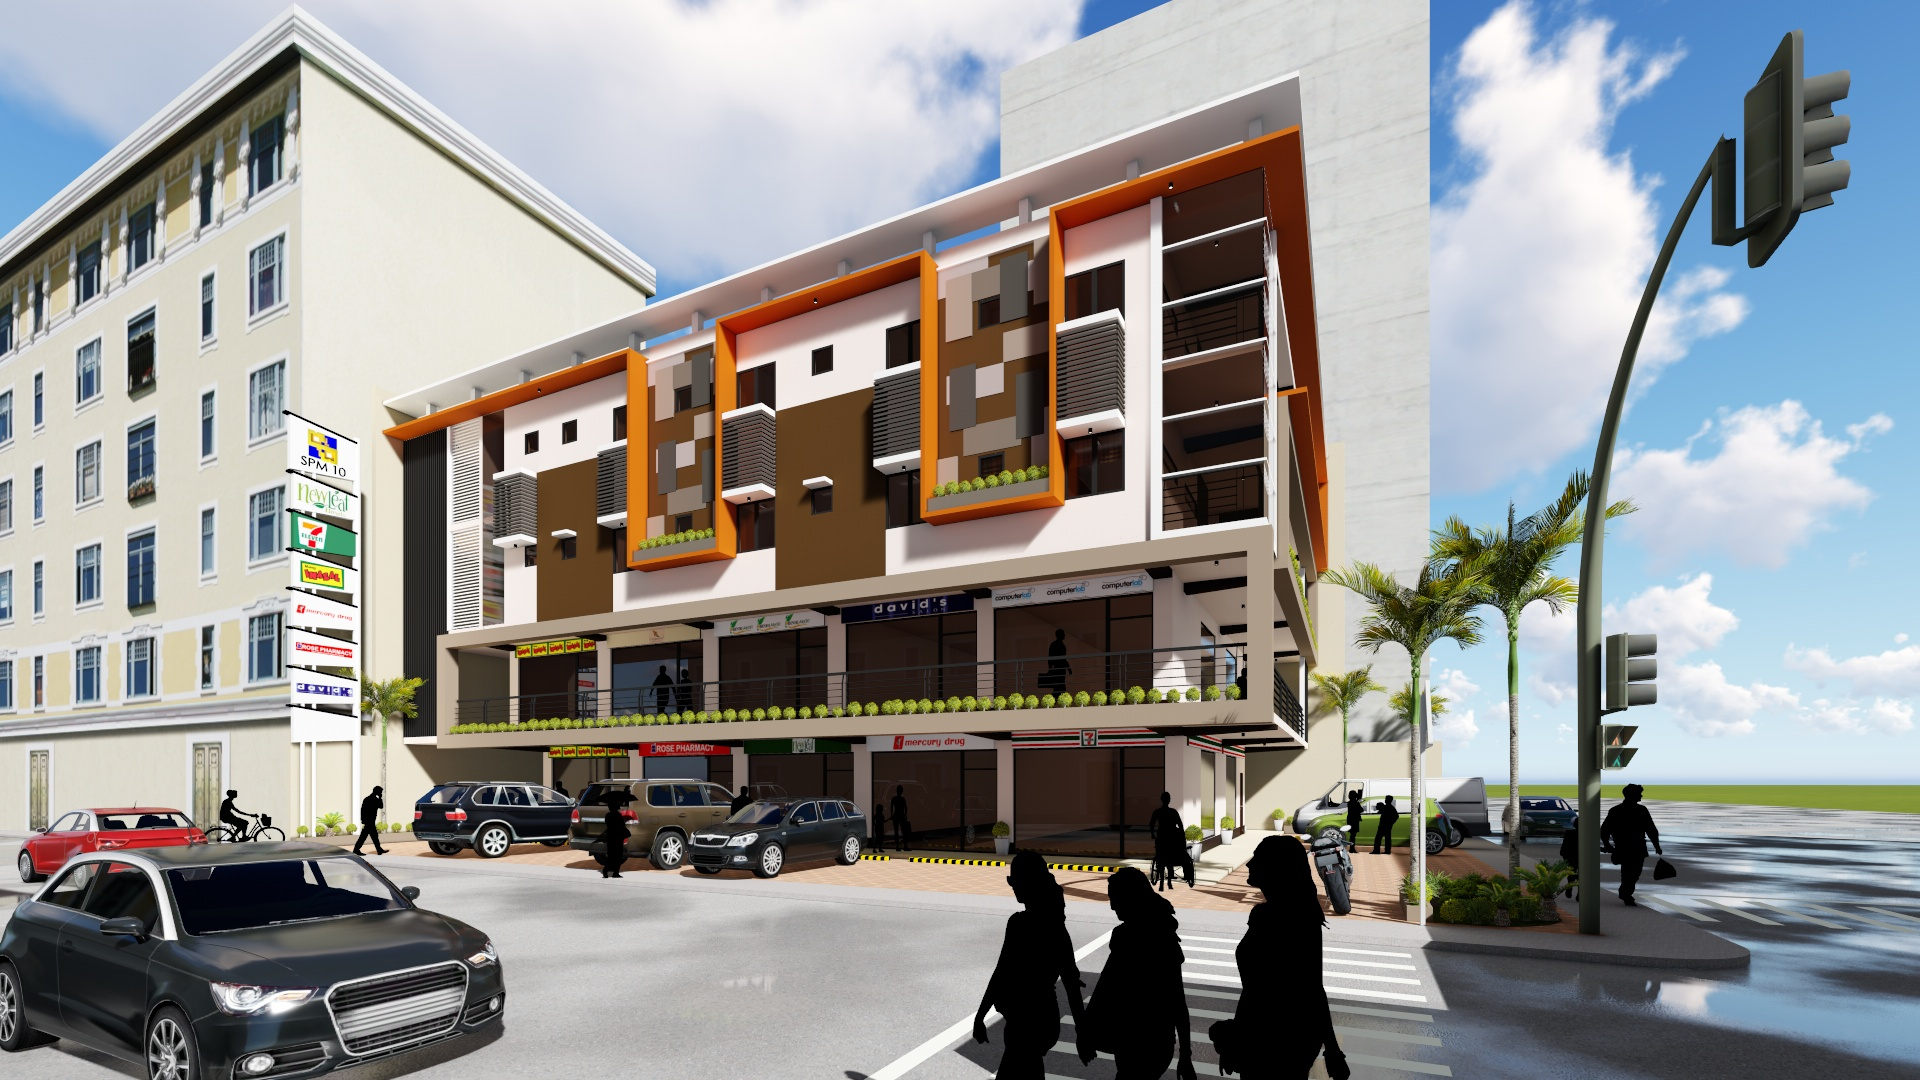 4 storey commercial building concept for Concept building